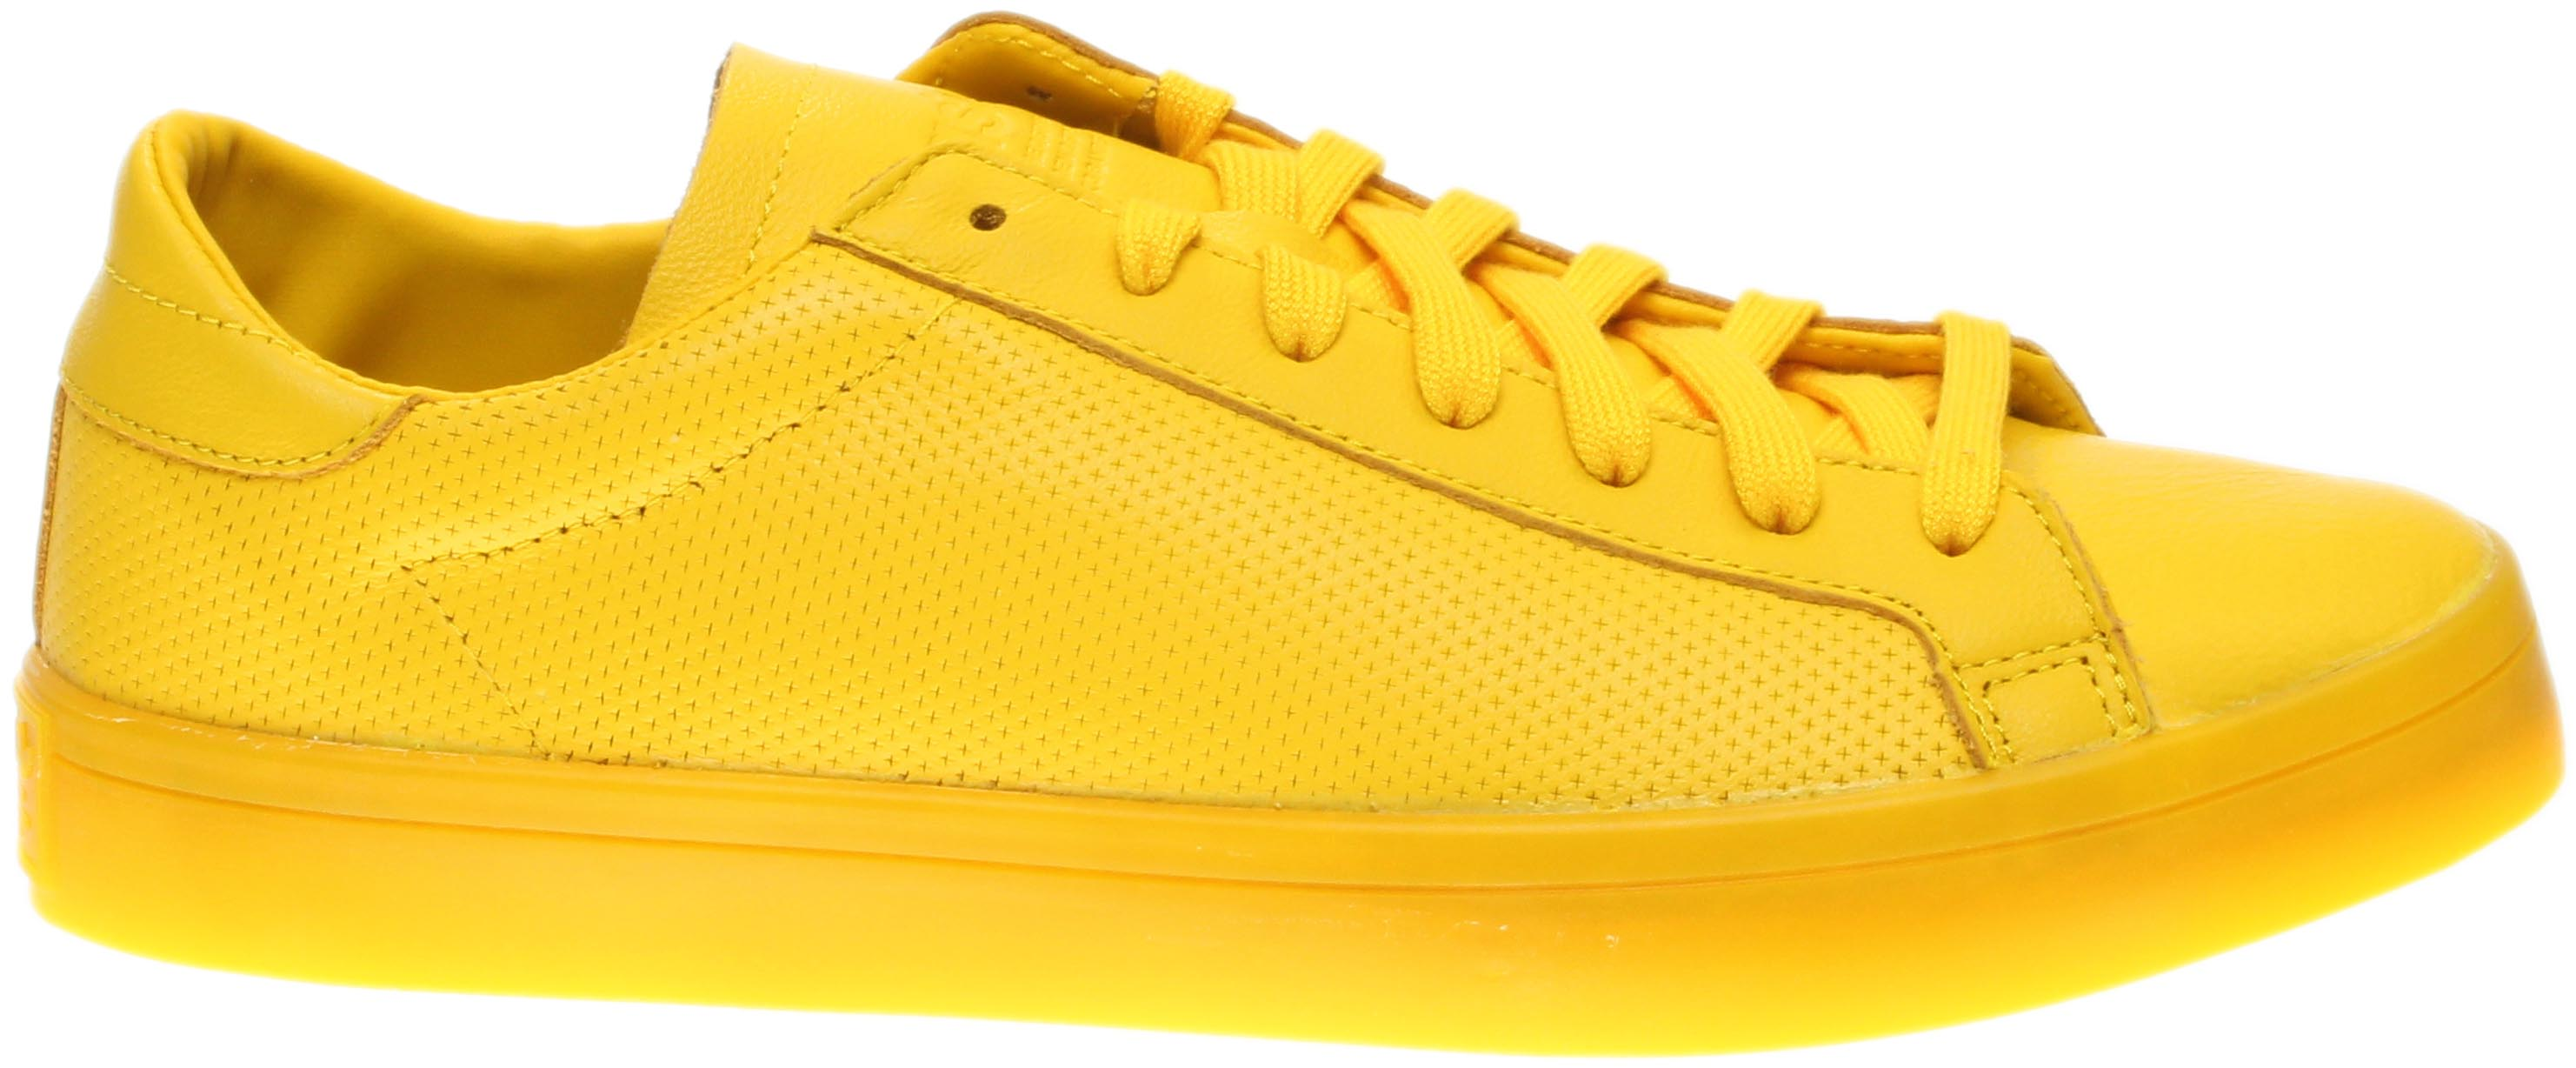 low priced 2b97d 90e9f adidas CourtVantage Adicolor Sneakers Yellow - Mens - Size 4 D